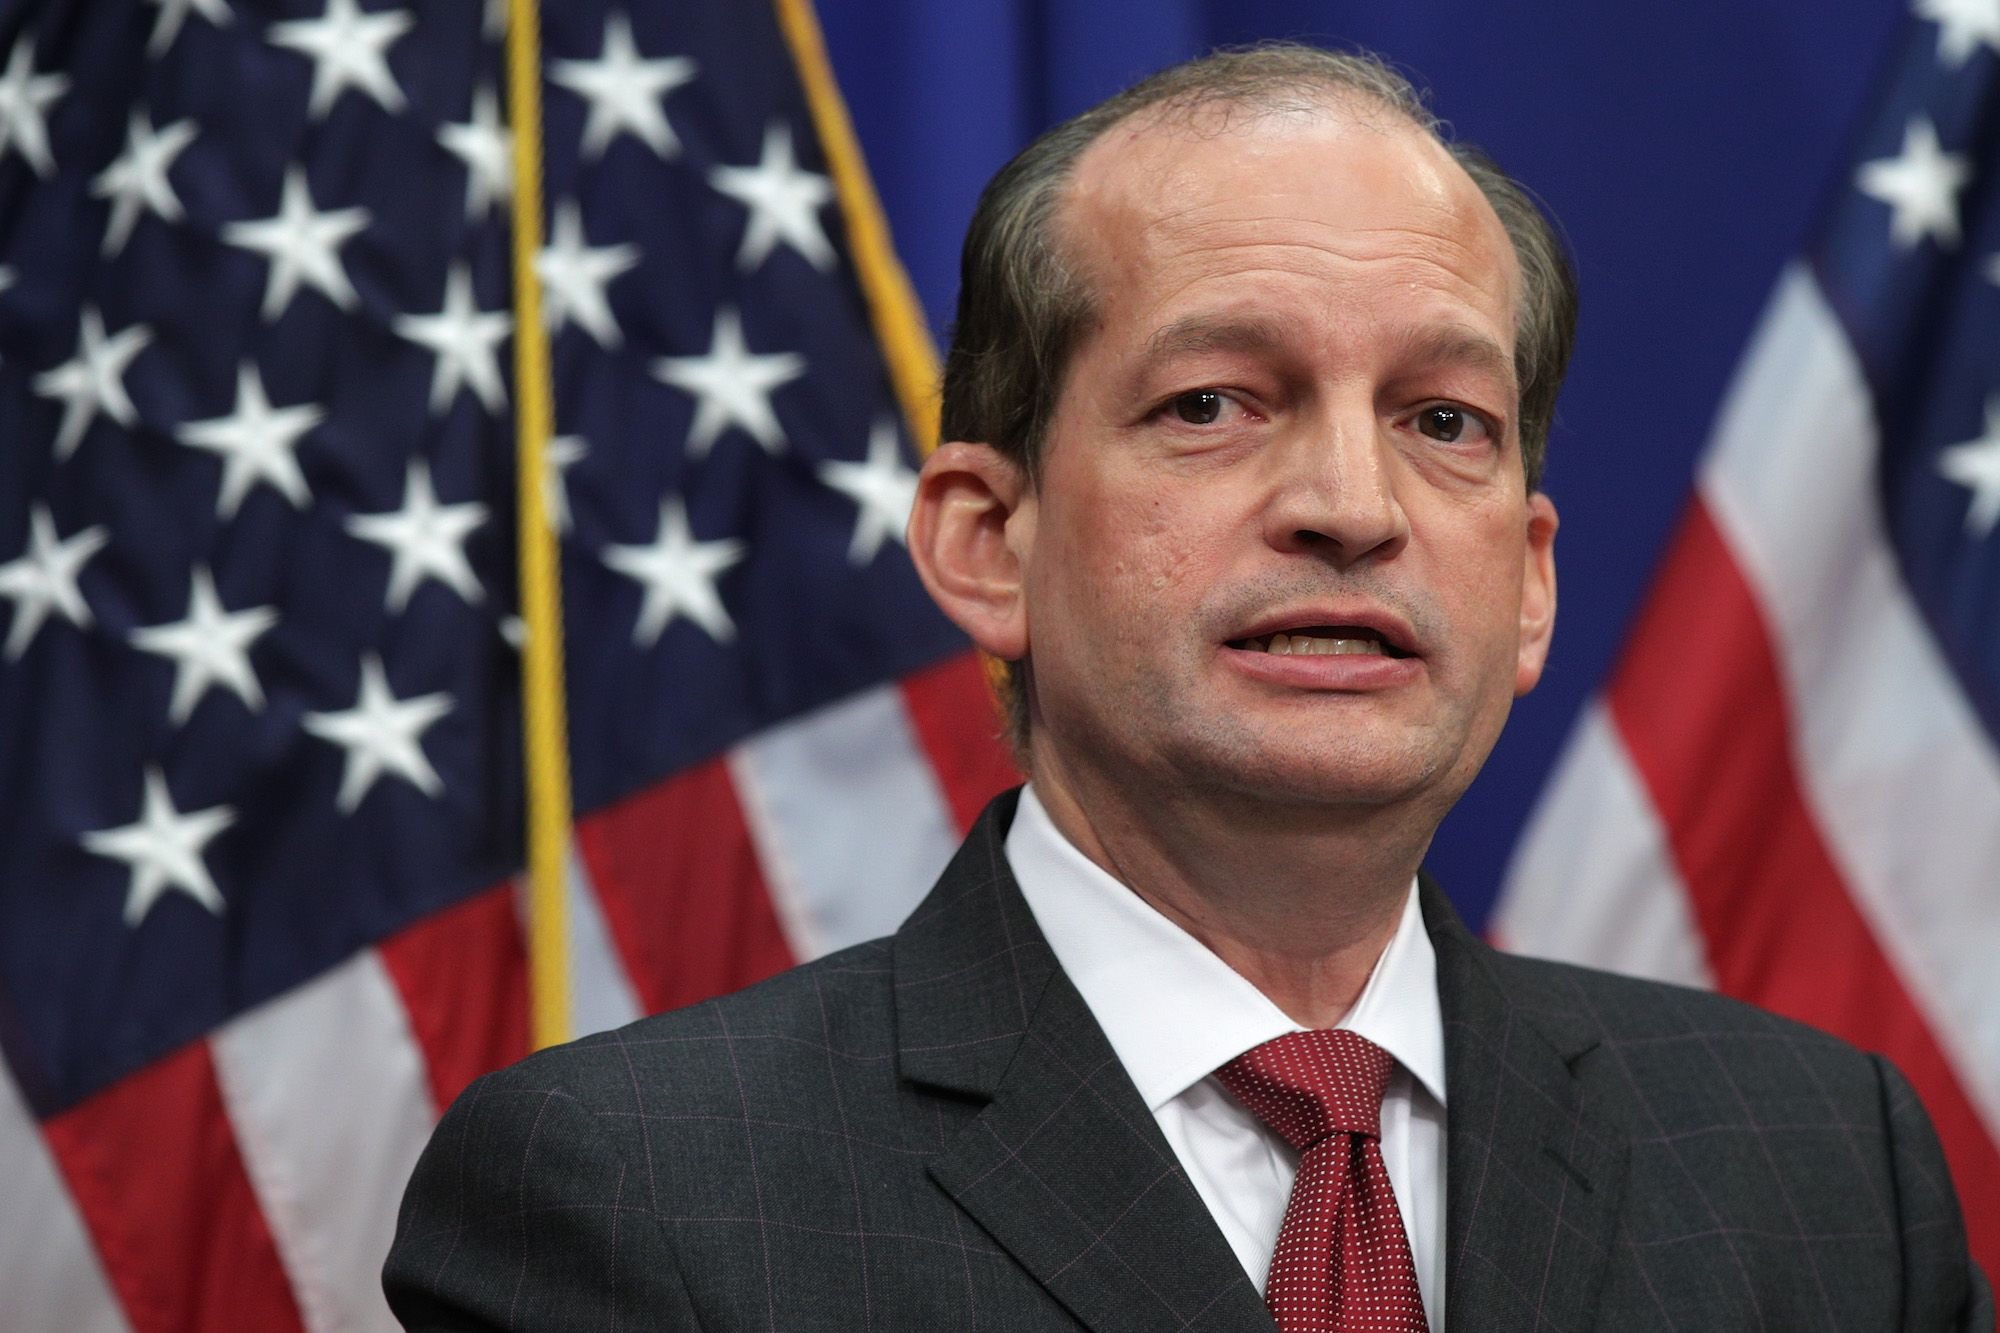 Alex Acosta Can Dodge Questions All He Wants. His Epstein Deal Looks Worse By the Day.